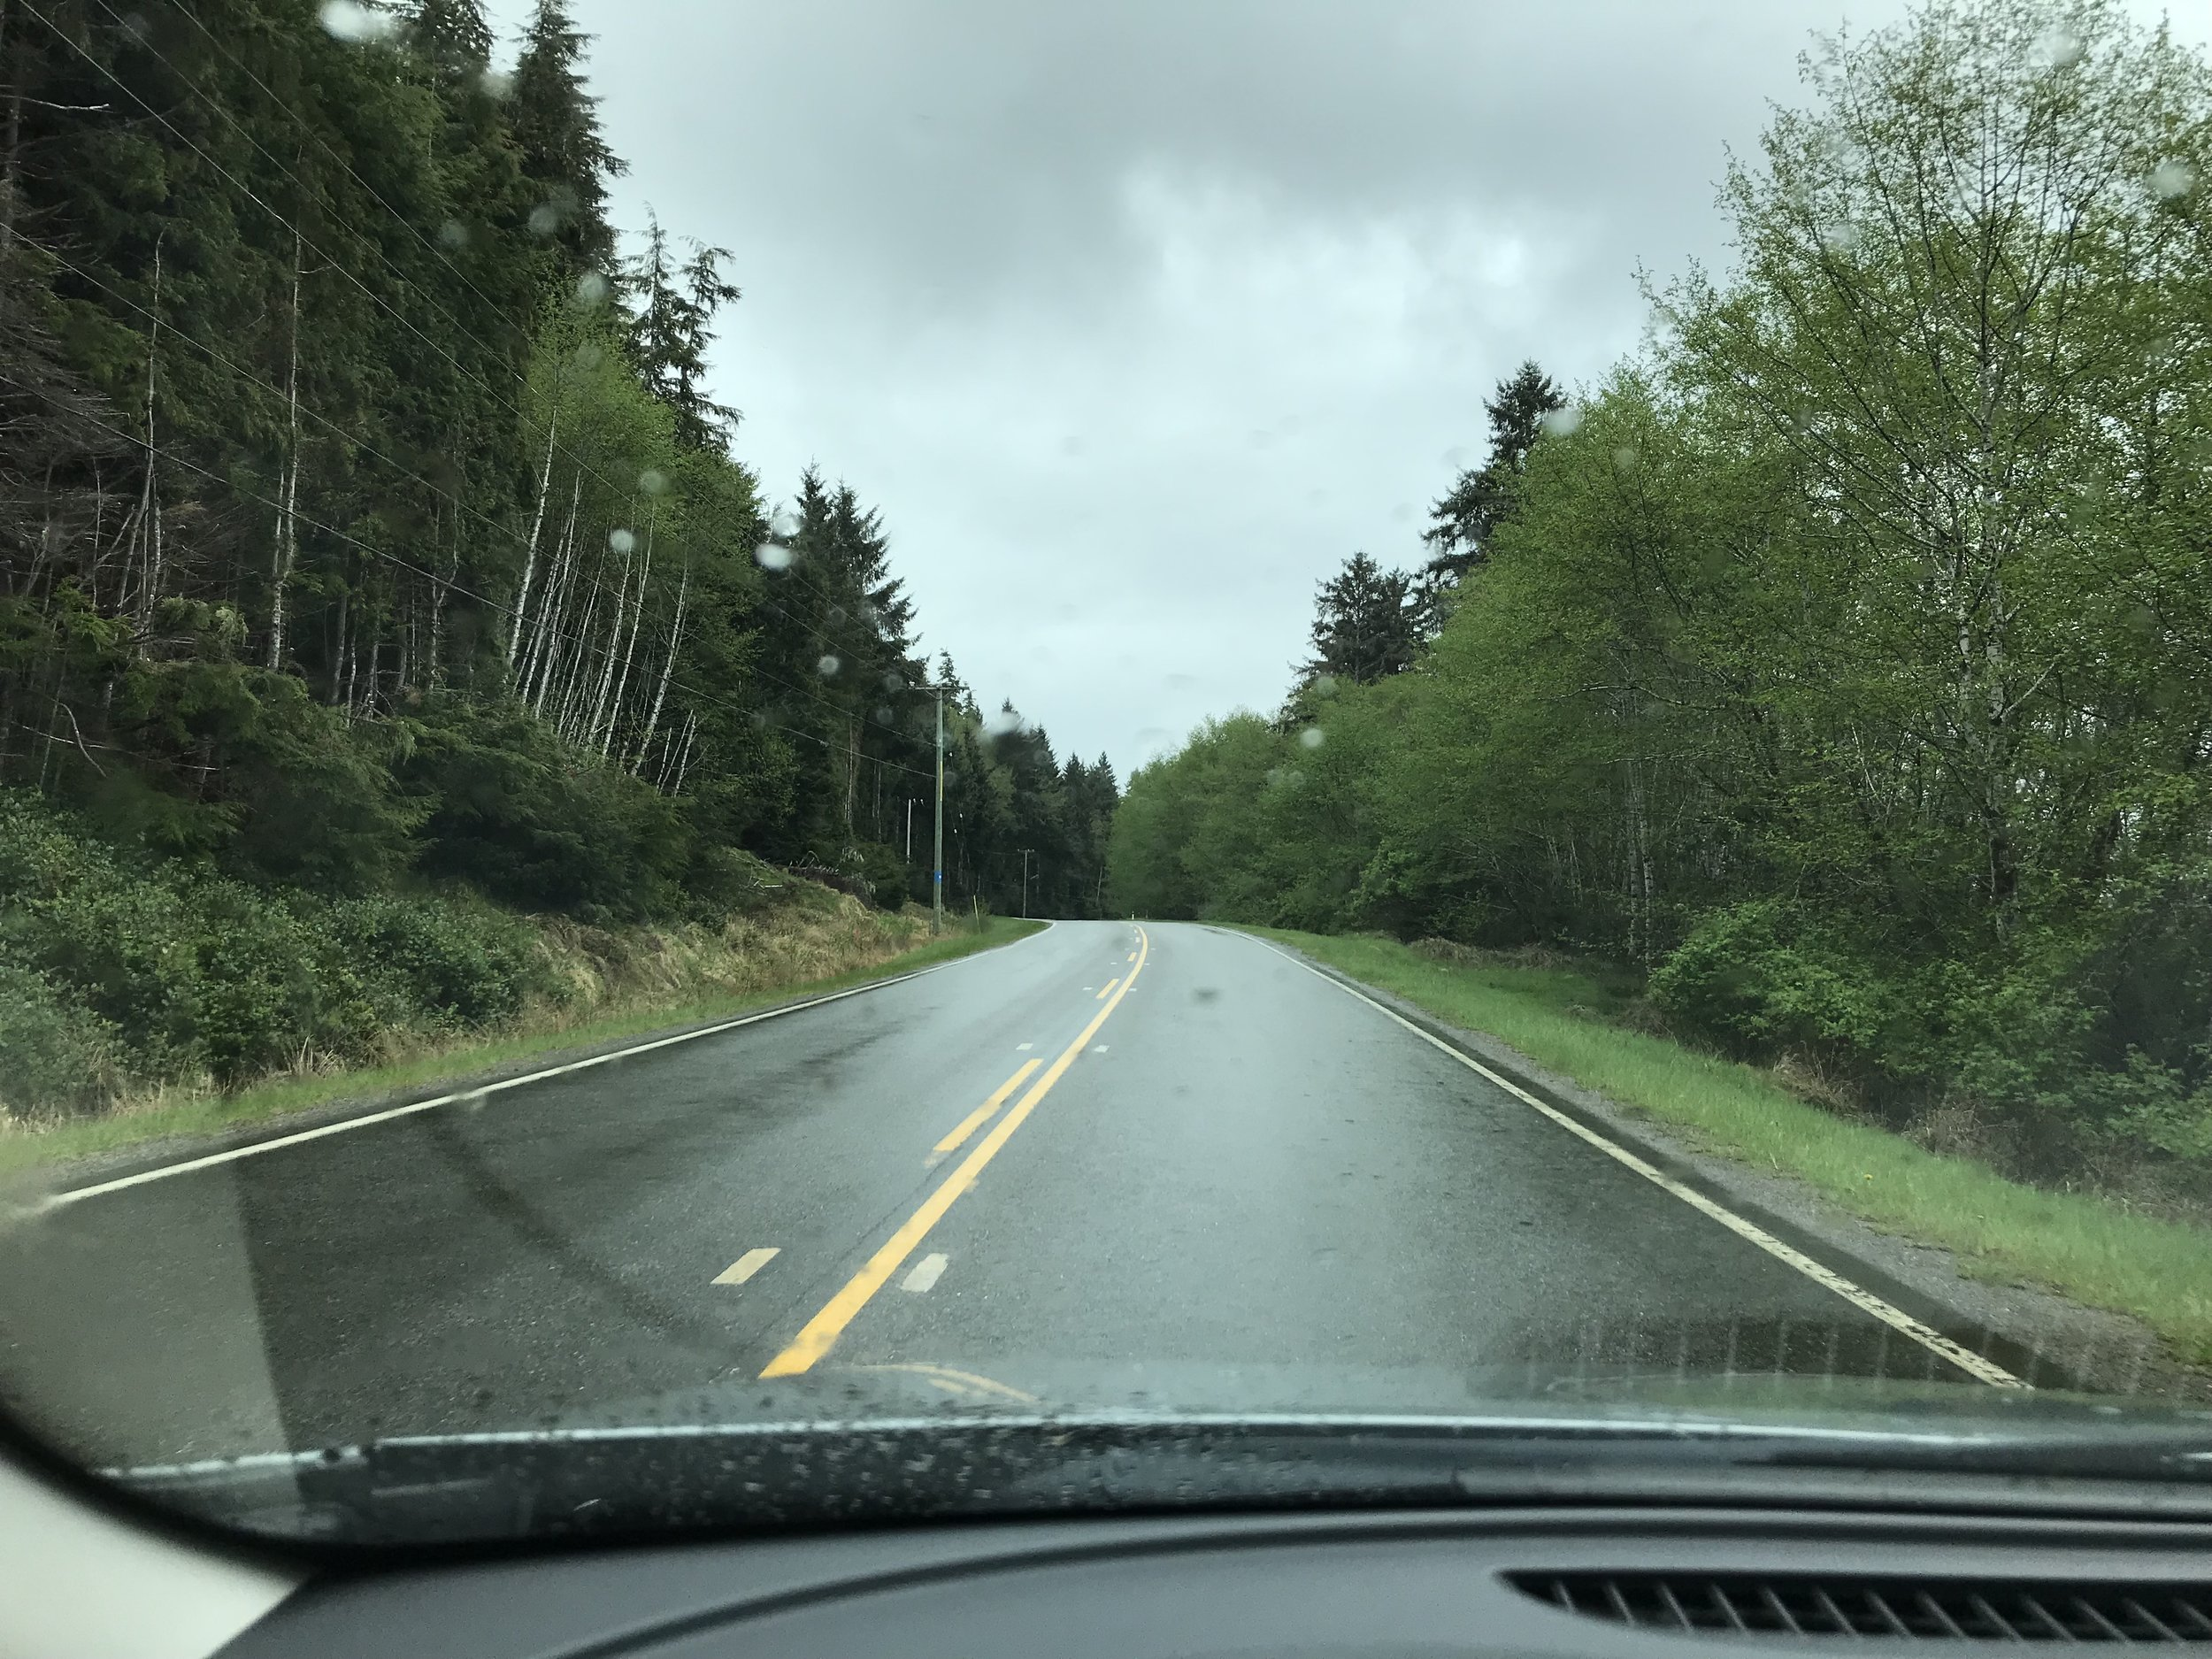 On the road to Skidegate